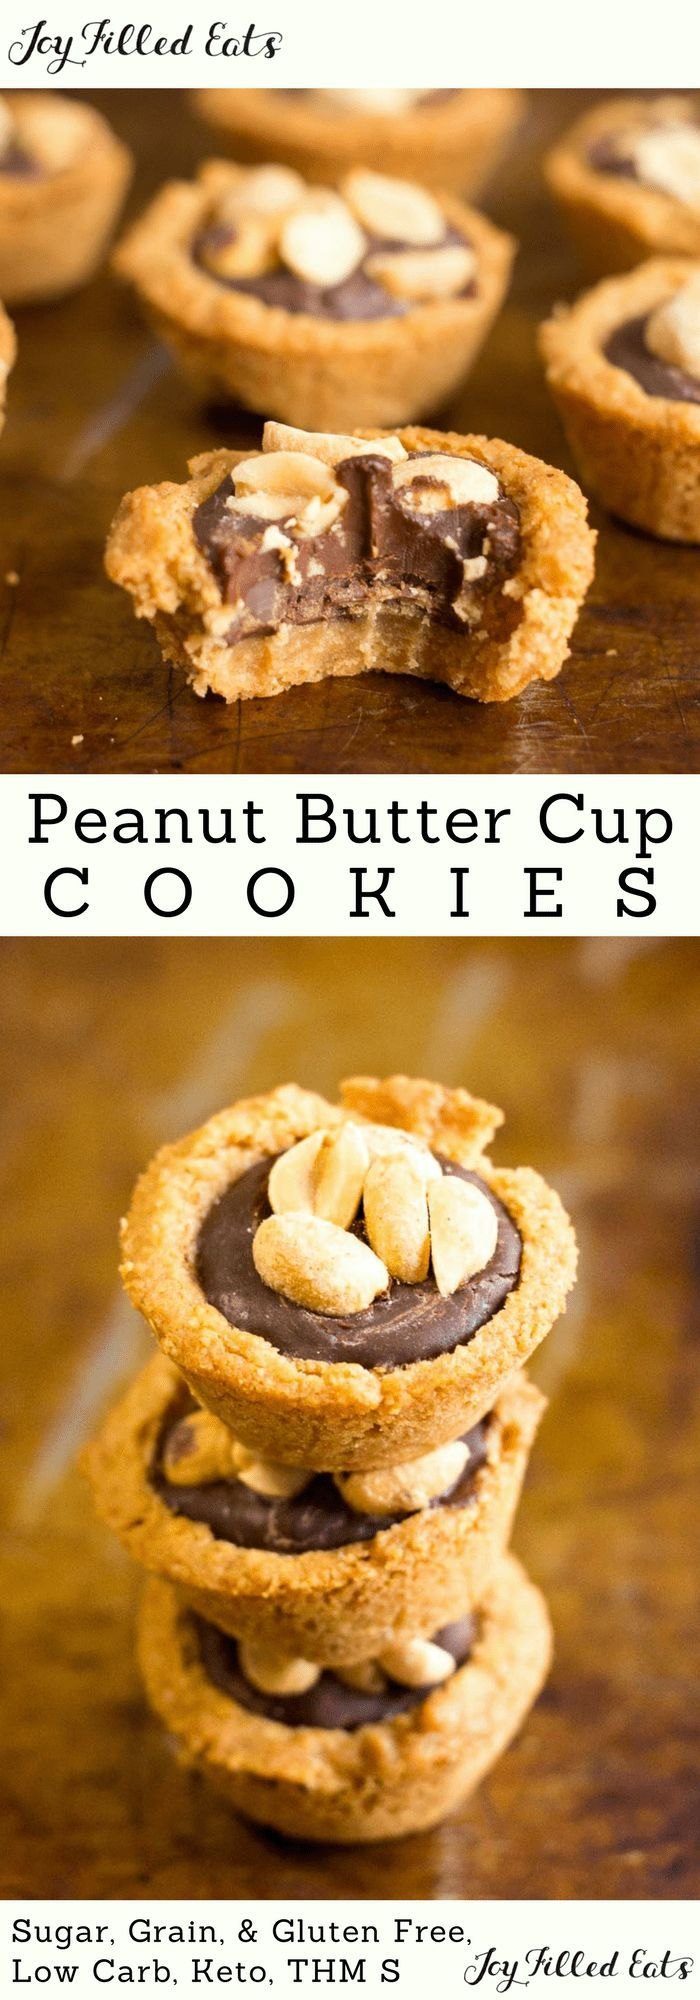 Peanut Butter Cup Cookies - Low Carb, Grain-Free, Gluten-Free. Keto, Sugar-Free, THM S - these are a match made in heaven. With a tender cookie crust, chocolate ganache filling, and the crunch of salty peanuts on top your cravings will be fulfilled.